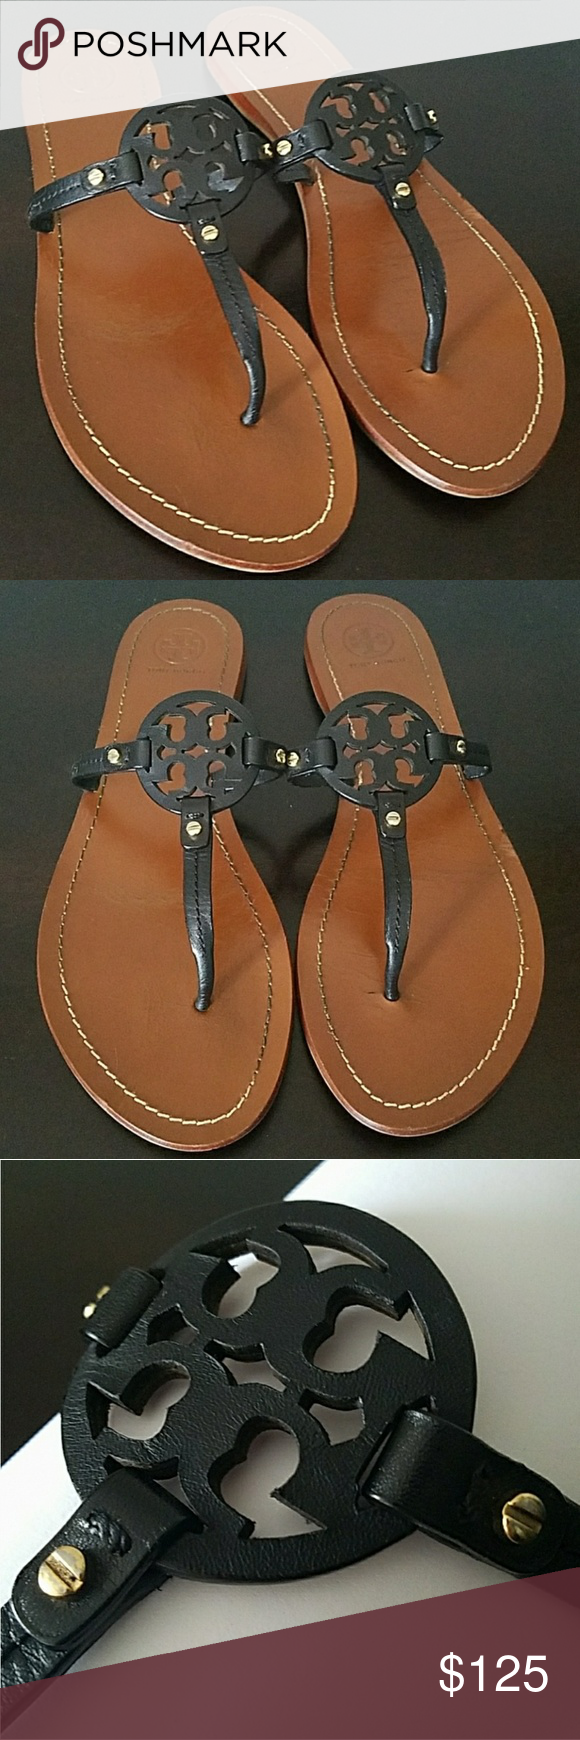 082d09e126fa Tory Burch Mini Millers Sandles Authentic Tory Burch mini Miller sandals in  great pre-loved condition as shown in pics. Black leather upper and tan  footbed.